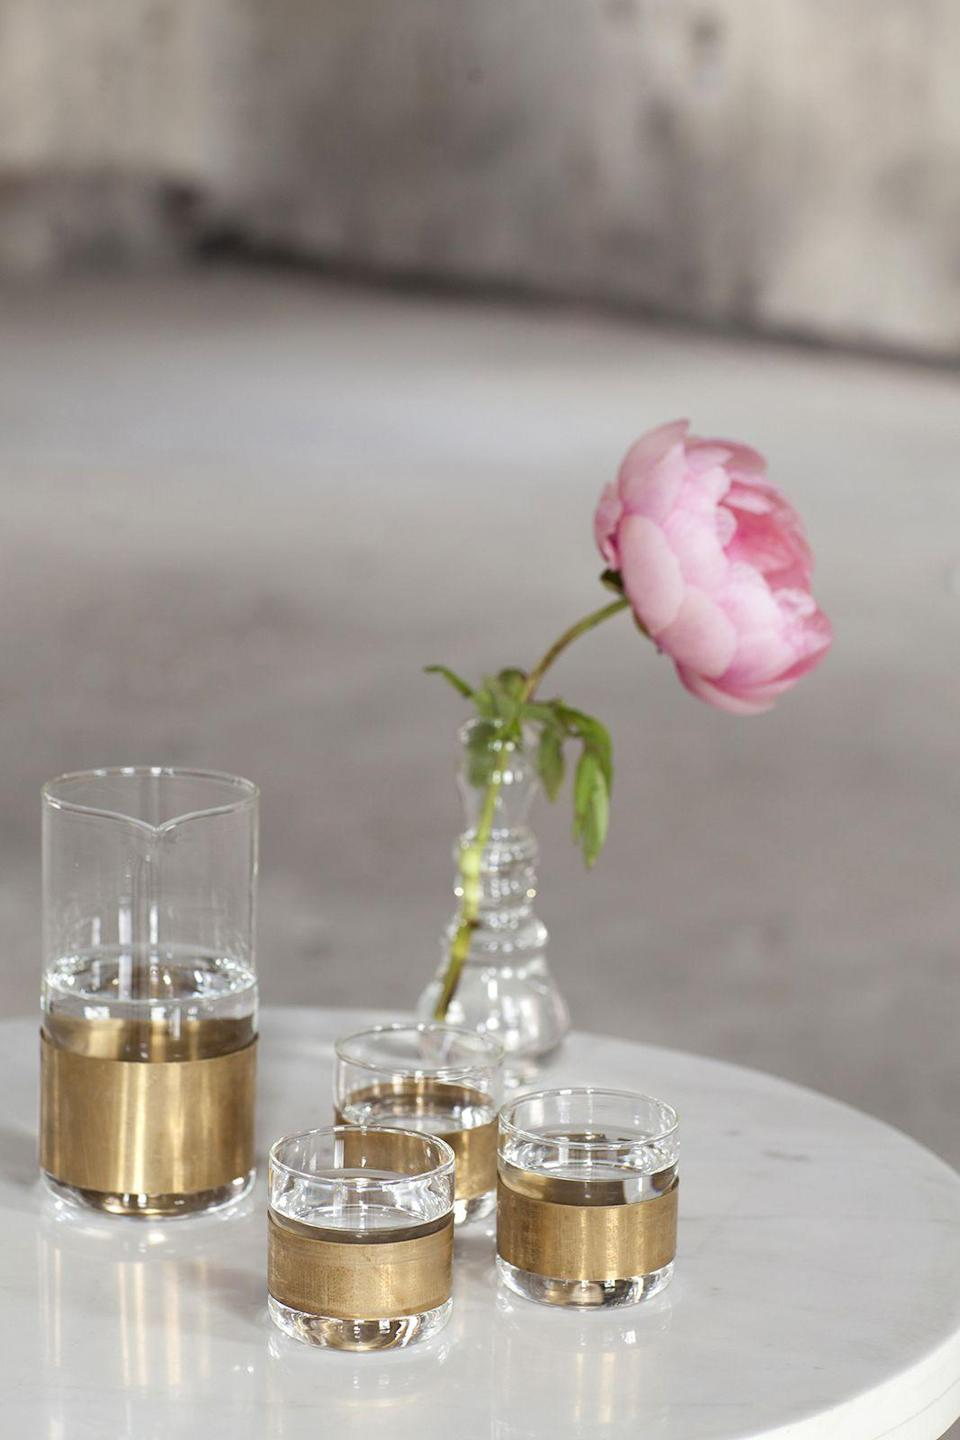 """<p><strong>Raise a glass</strong></p><p>Forget cut crystal, the only way to glam up your drinks receptacles is with brass. Whether you use them for Bloody Marys or mojitos, these brass tumblers and carafe will certainly put a stylish twist on your tipple of choice.</p><p>Brass and glass carafe, £29 and tumblers, £15 each, <a href=""""http://www.rockettstgeorge.co.uk/brass-and-glass-carafe-tumblers-sold-separately-39301-p.html"""" rel=""""nofollow noopener"""" target=""""_blank"""" data-ylk=""""slk:rockettstgeorge.co.uk"""" class=""""link rapid-noclick-resp"""">rockettstgeorge.co.uk</a></p>"""